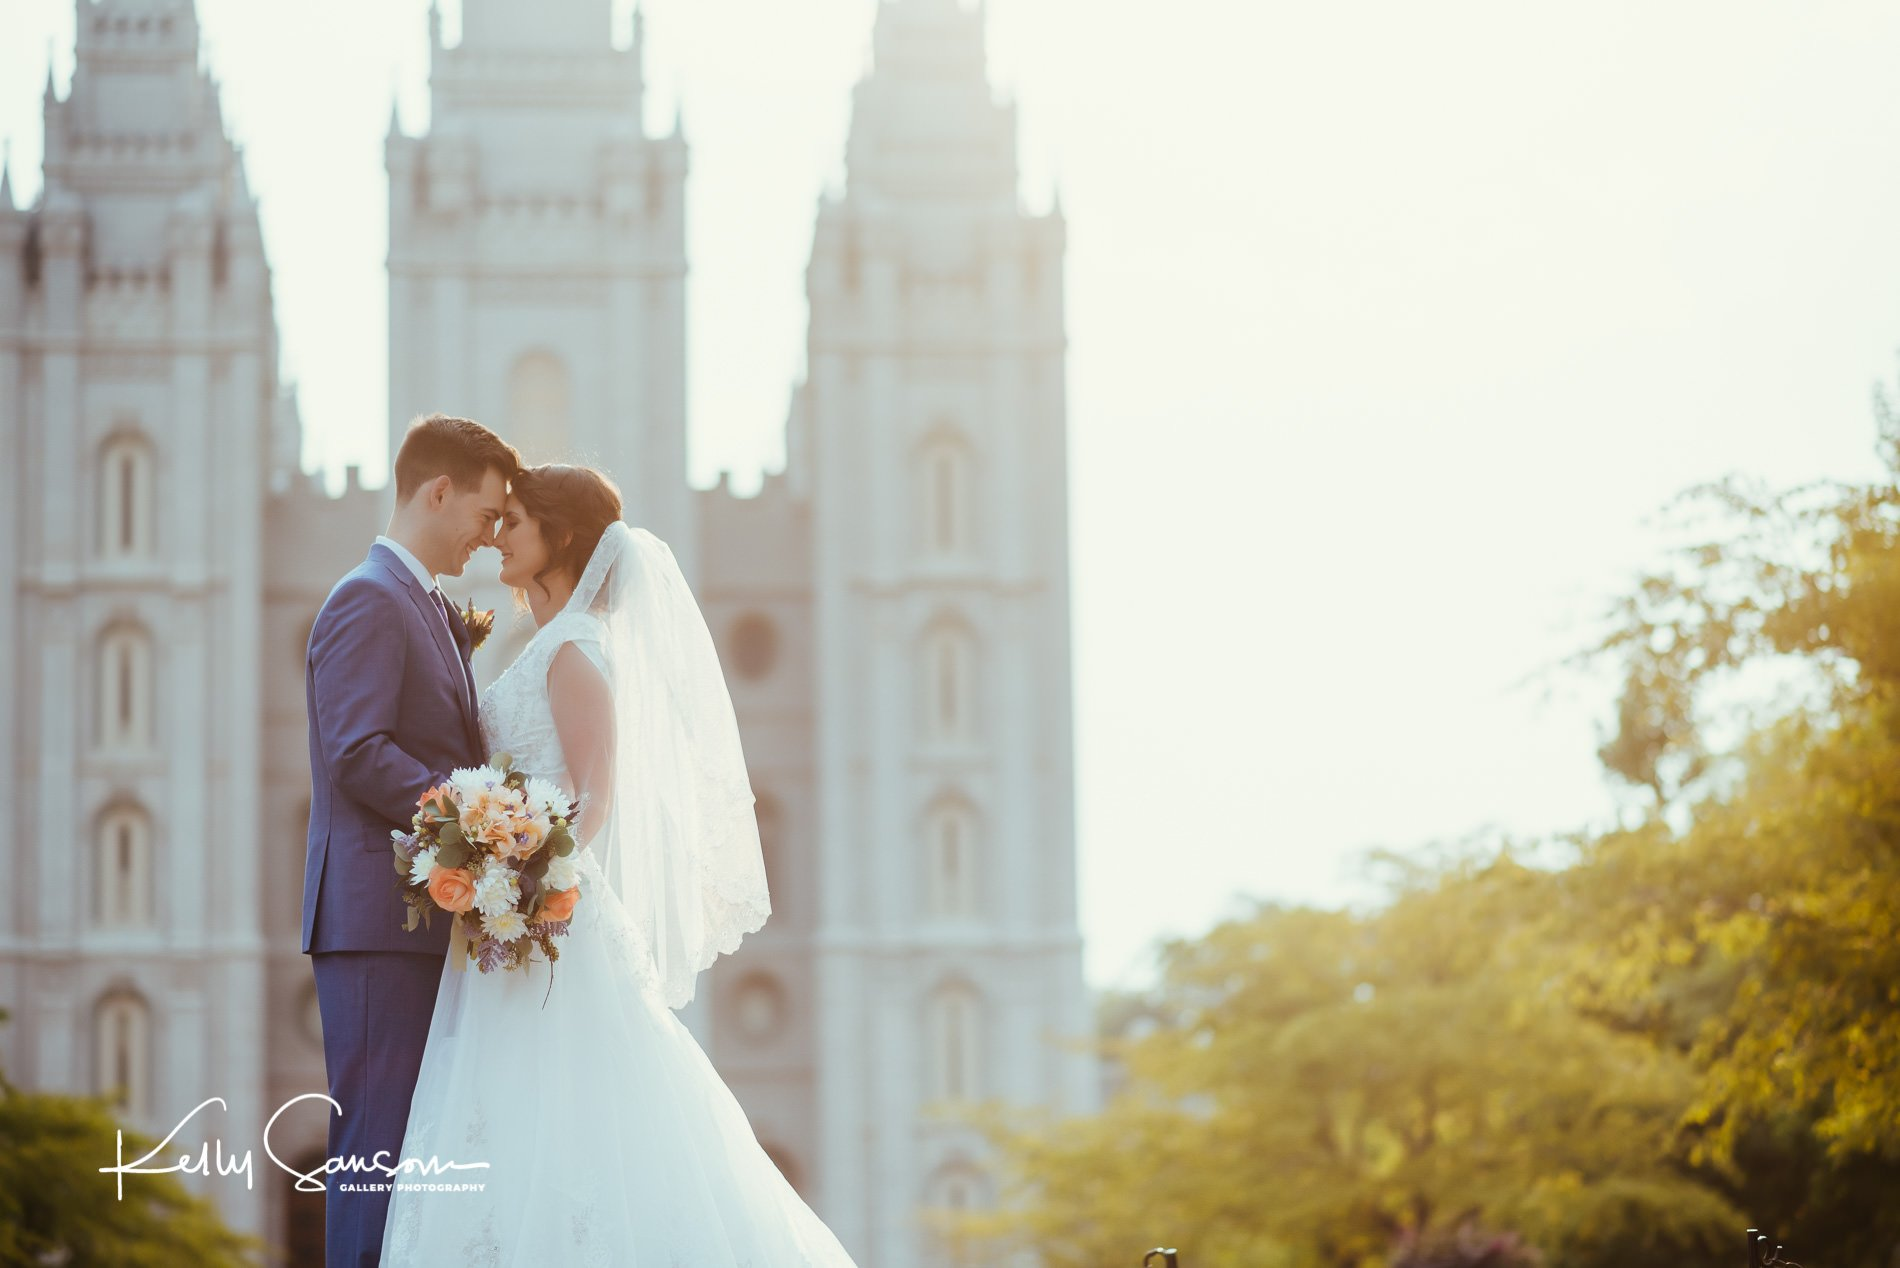 Jacquie and Zack Wedding Photography at the Salt Lake Temple